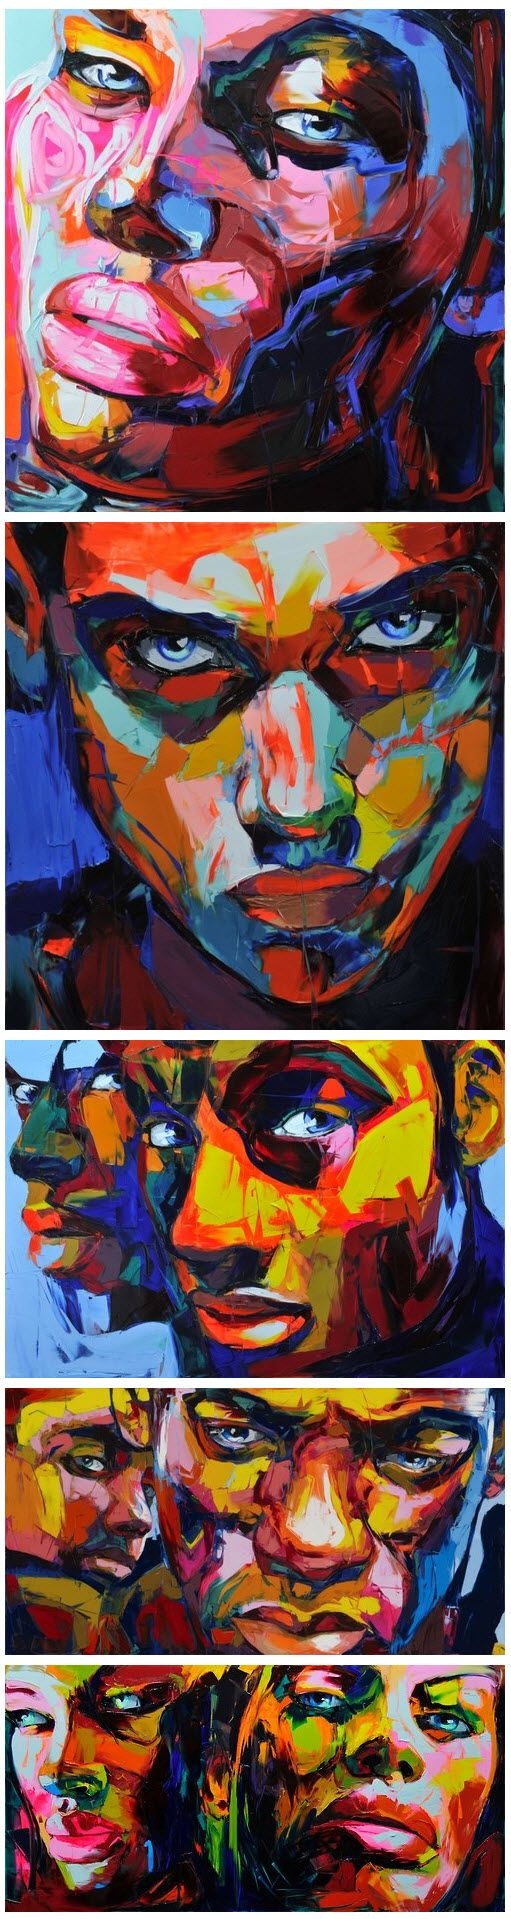 #Françoise Nielly #painting #portrait Facial expressions?